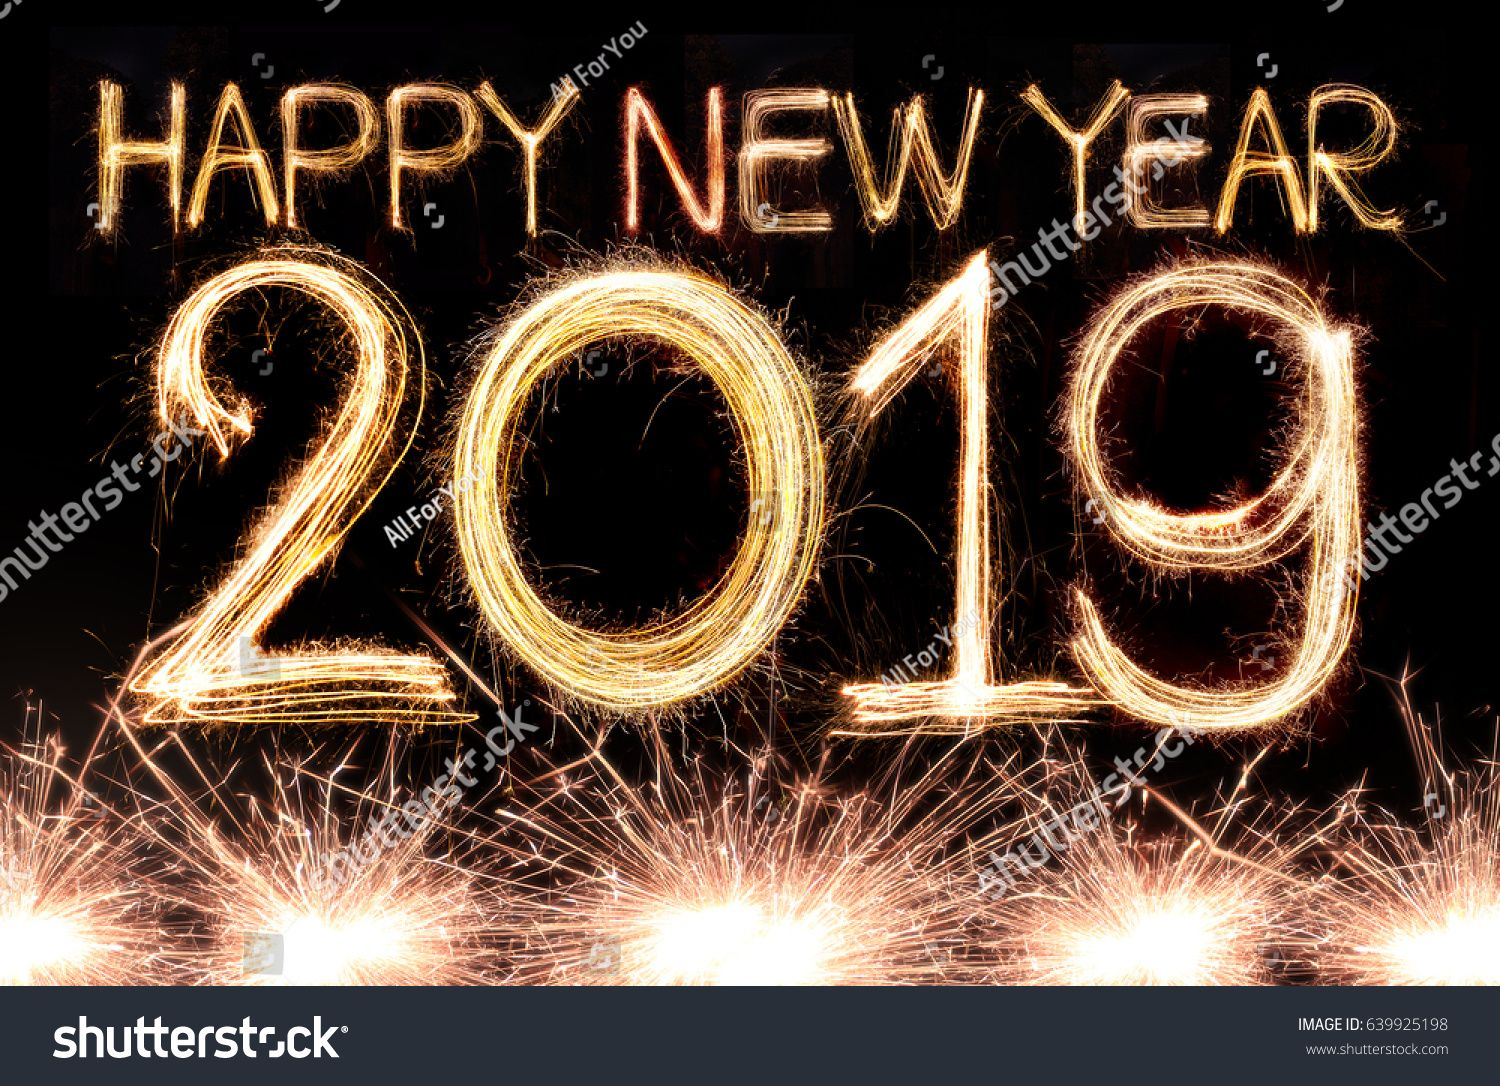 New Year's Eve 2019 Happy new year, Newyear, Happy new